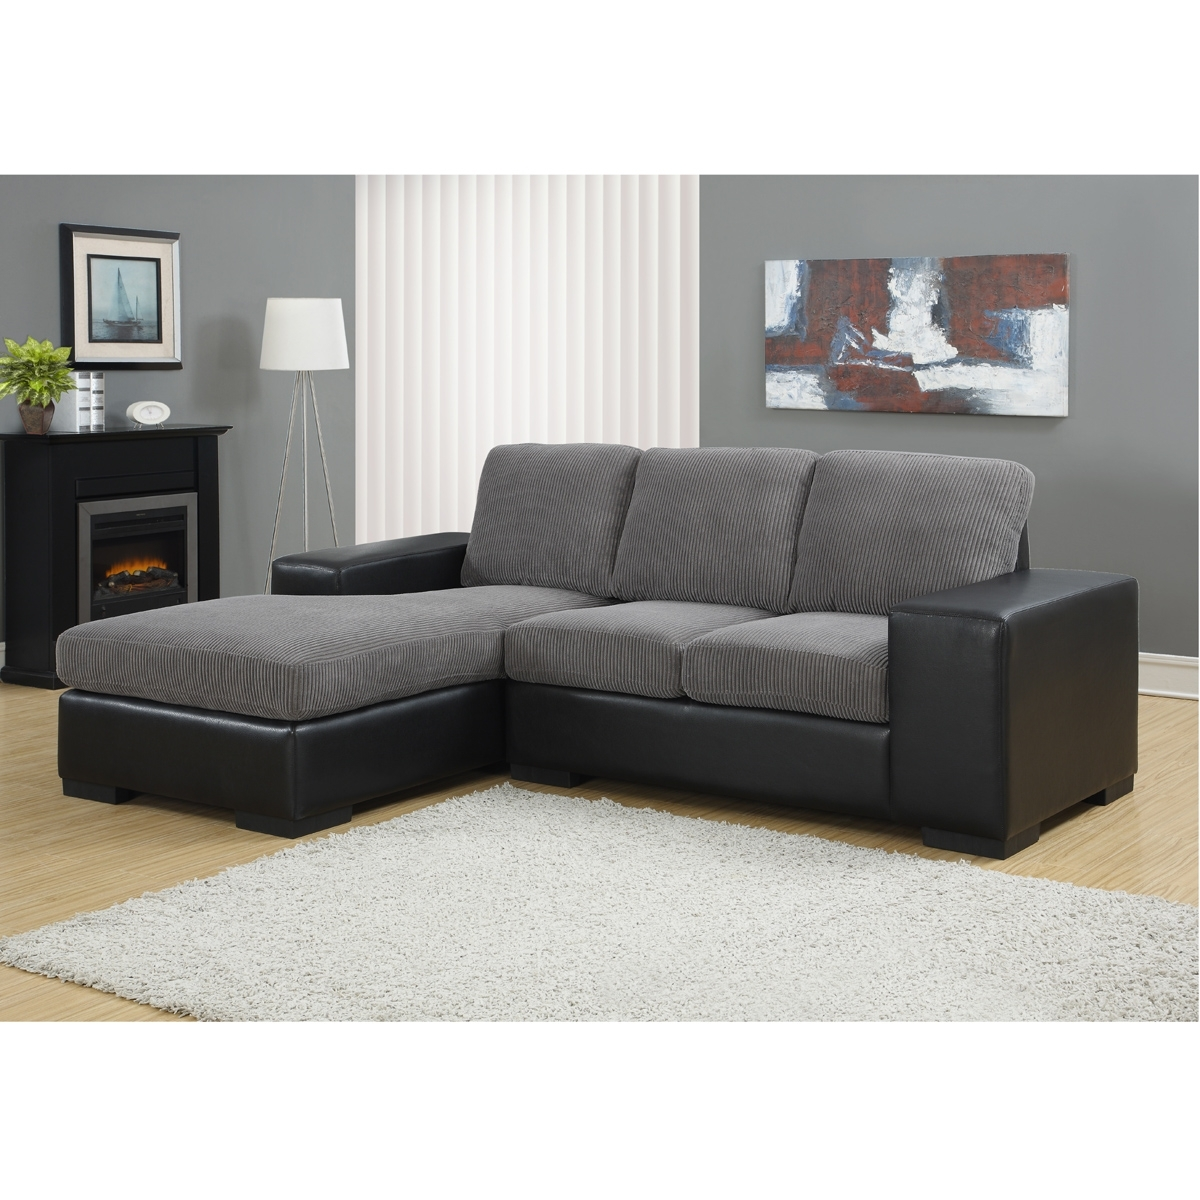 Modern Sectional Sofas (Gallery 2 of 20)